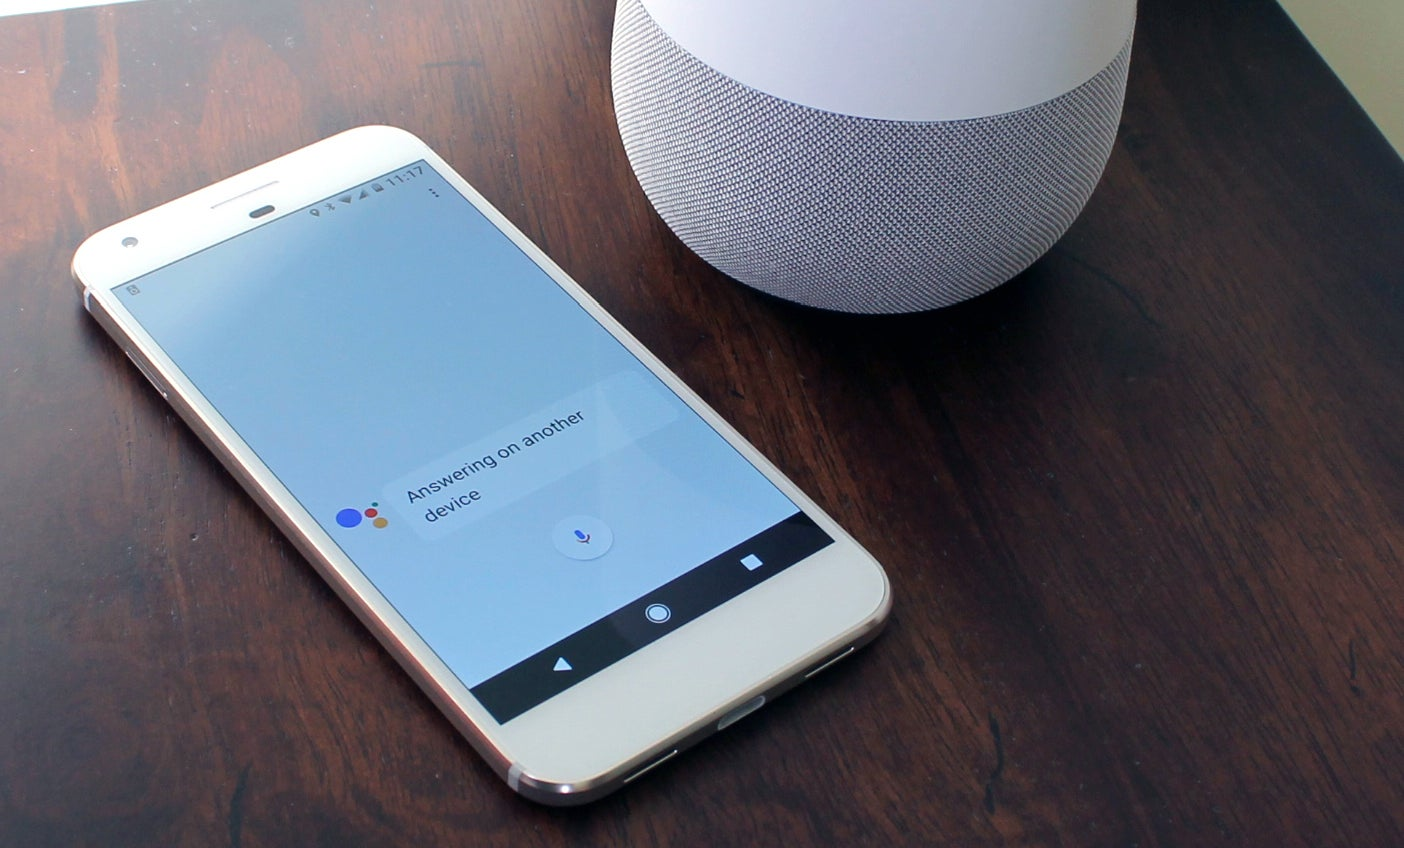 Google home and smartphone